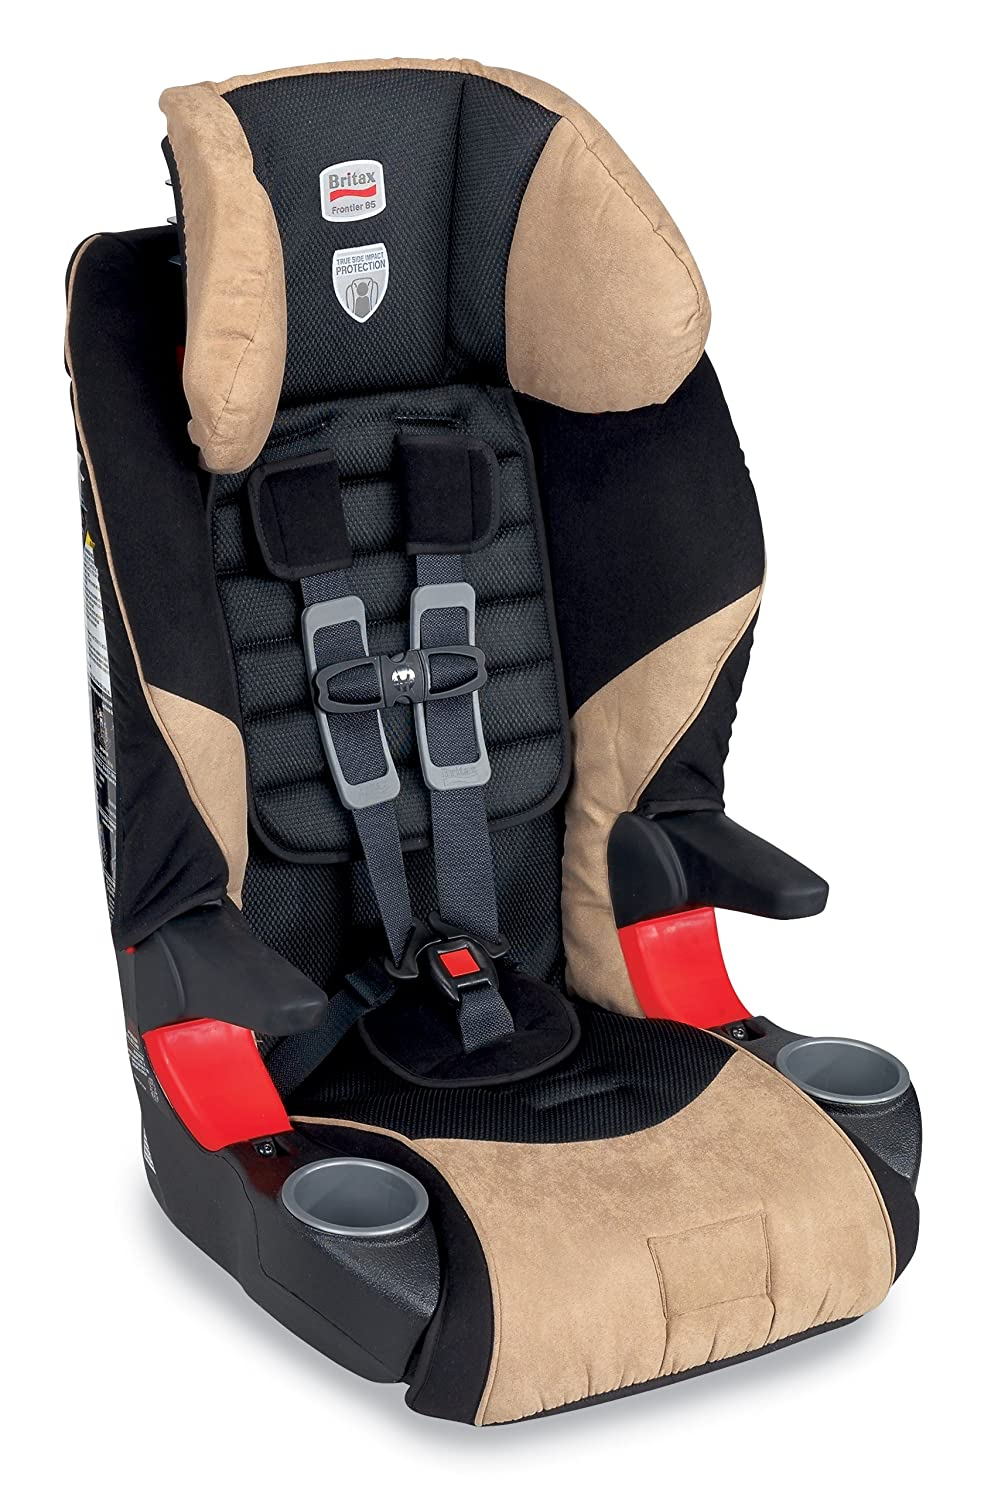 Britax Frontier 85 Combination Booster Car Seat, Canyon $185.00